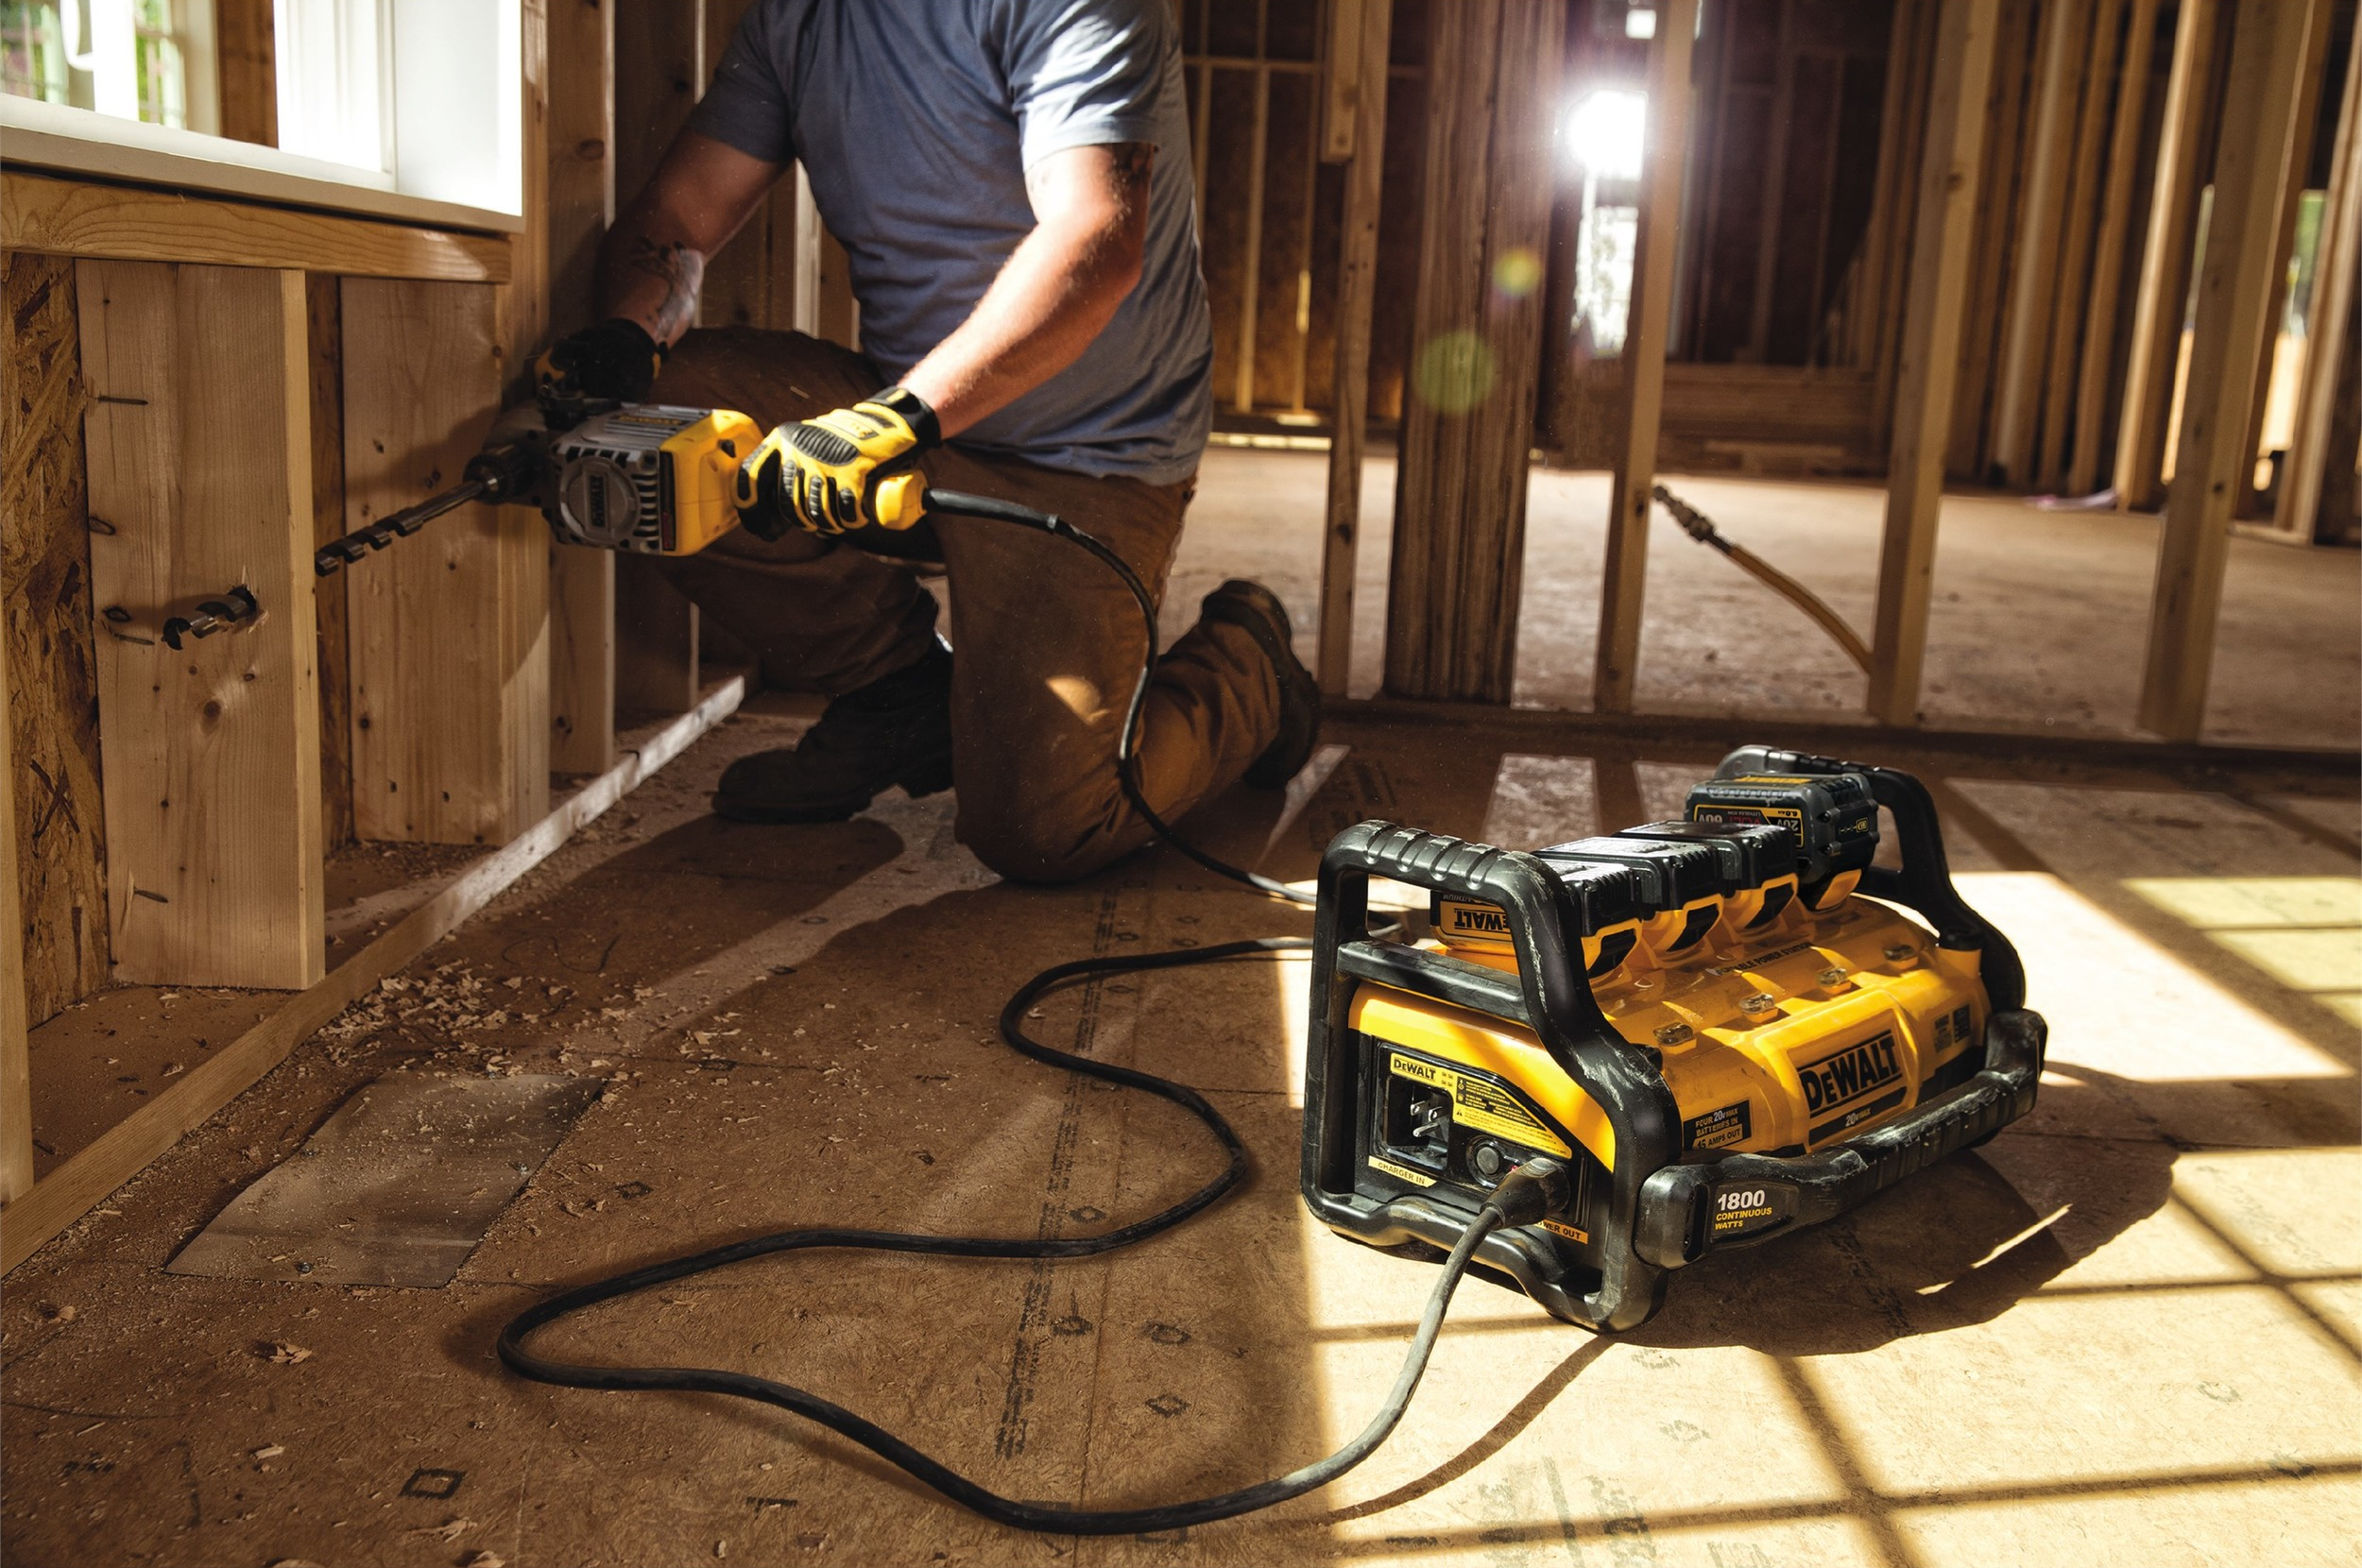 Image courtesy of DeWalt